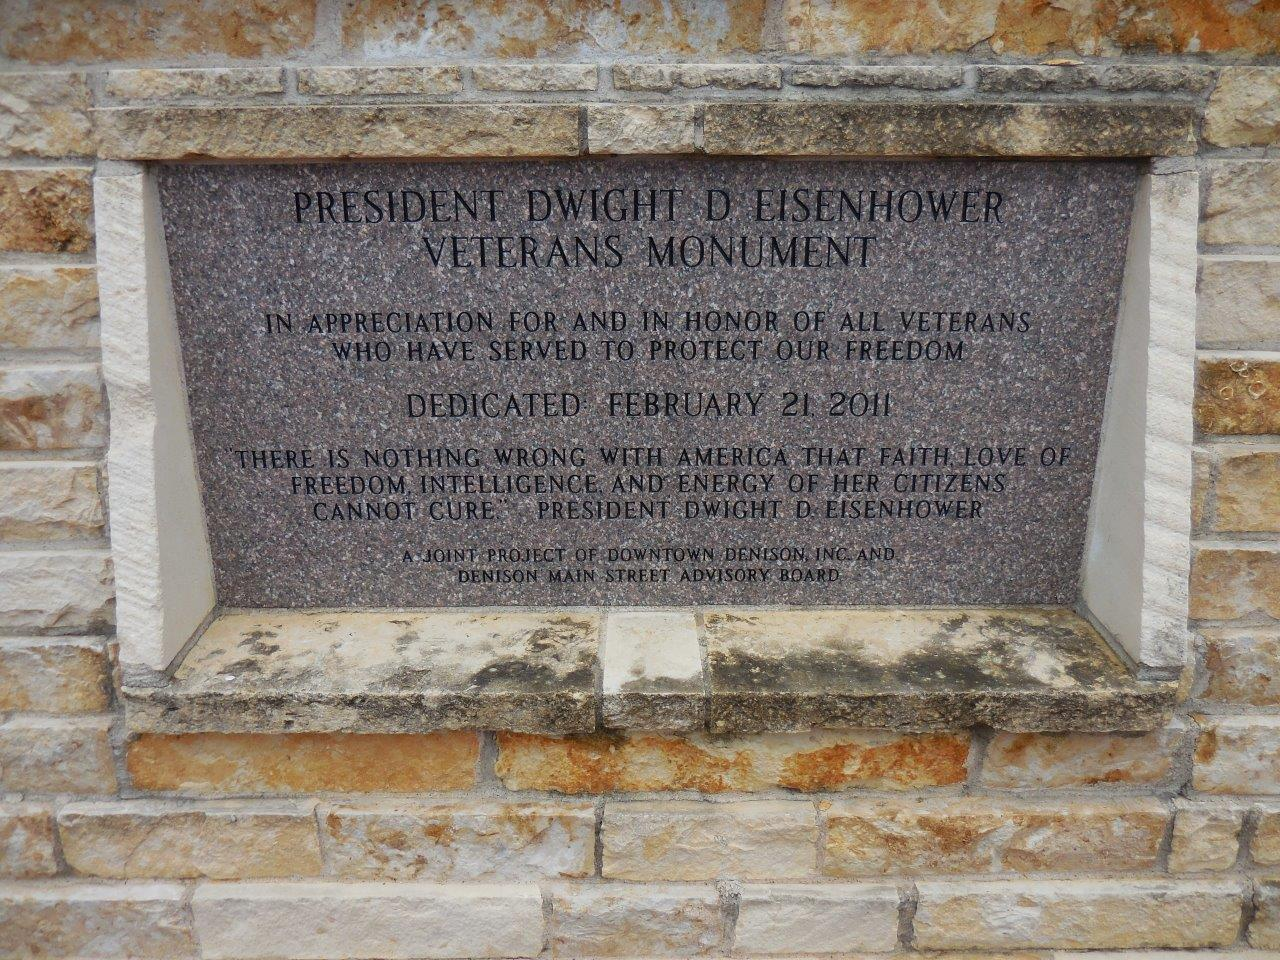 Dwight Eisenhower veterans monument